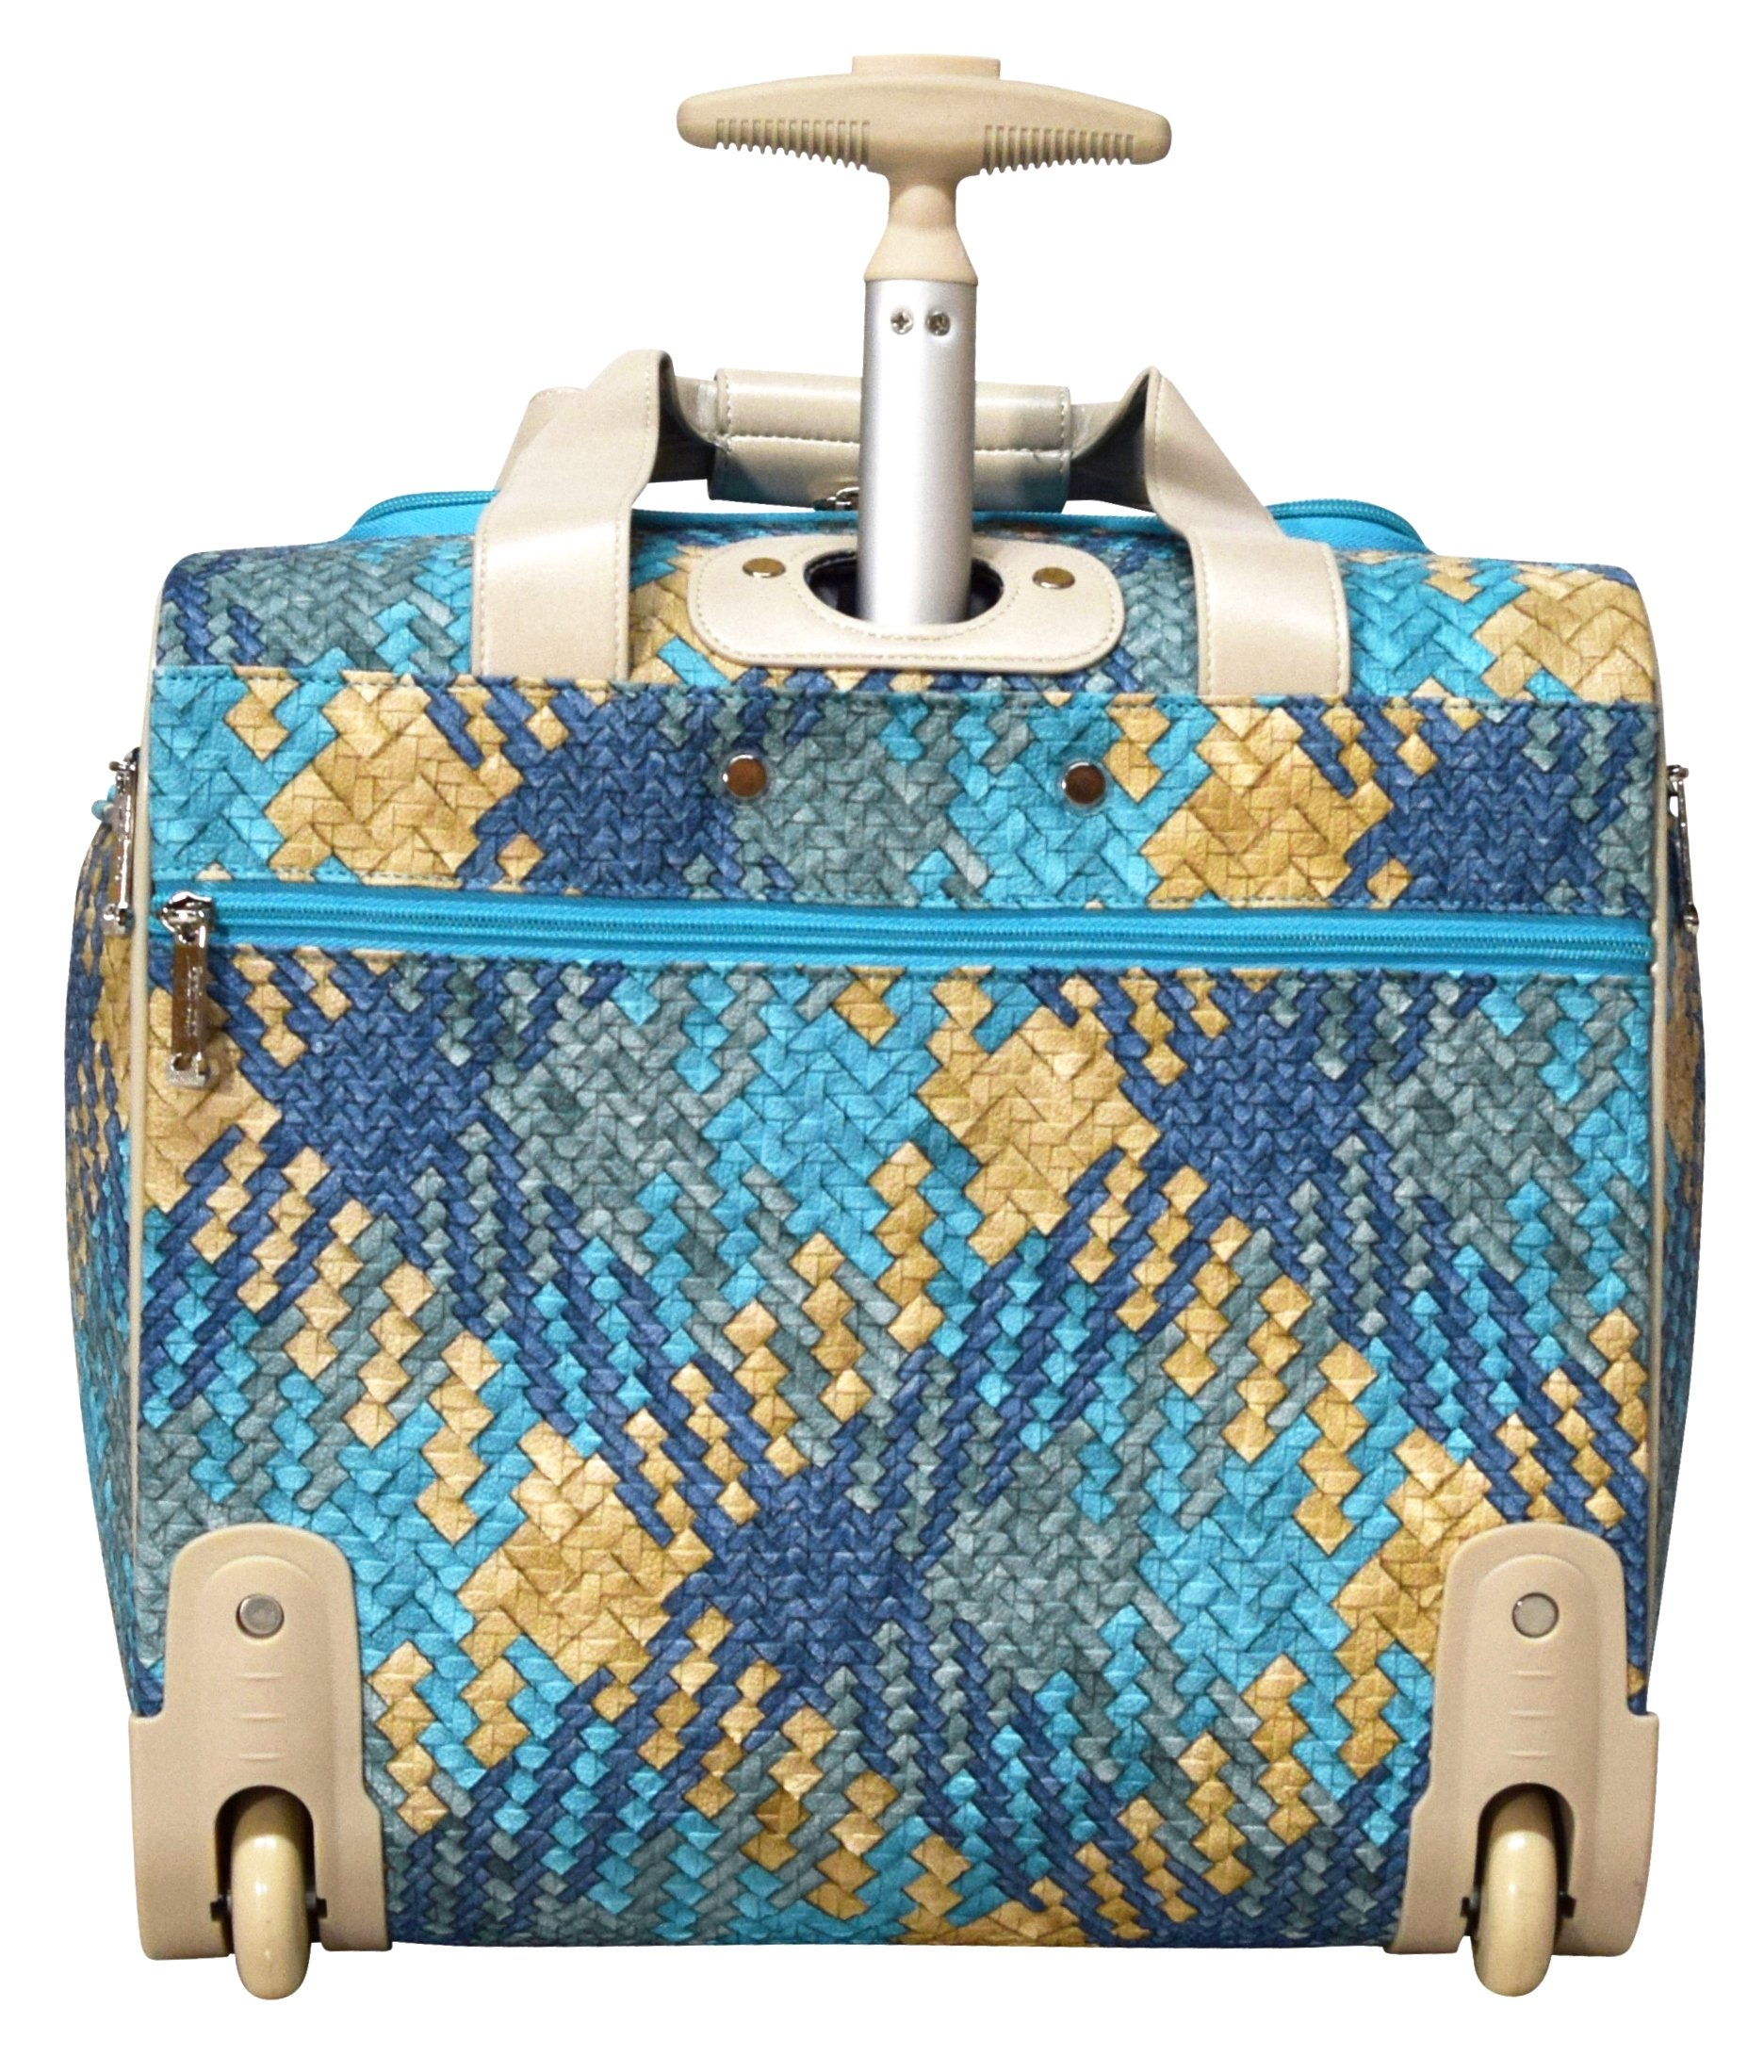 Nicole Miller Taylor Collection 15'' Under Seat Bag (Woven Teal) by Nicole Miller (Image #5)